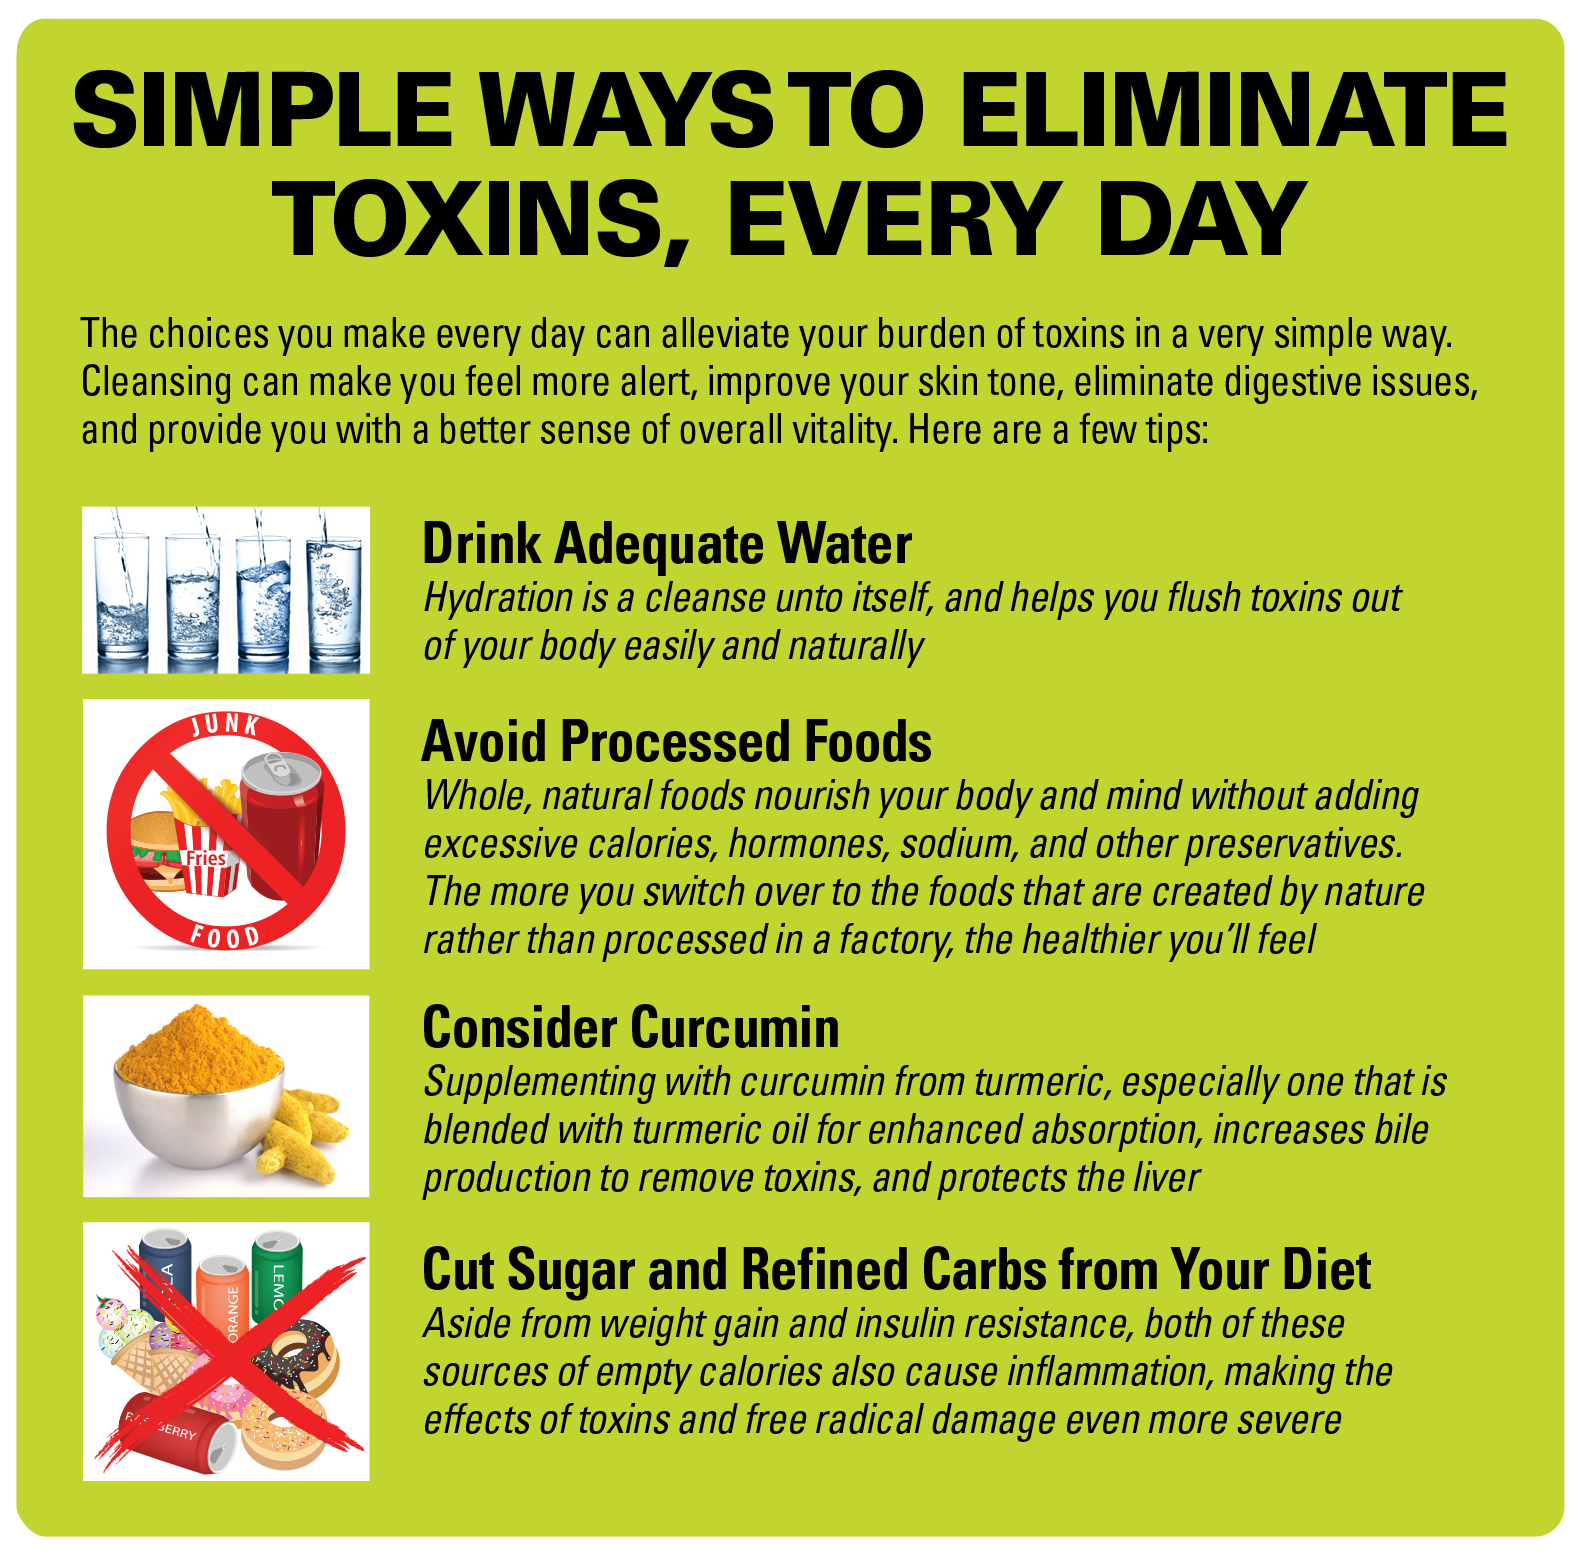 Simple Ways Eliminate Toxins